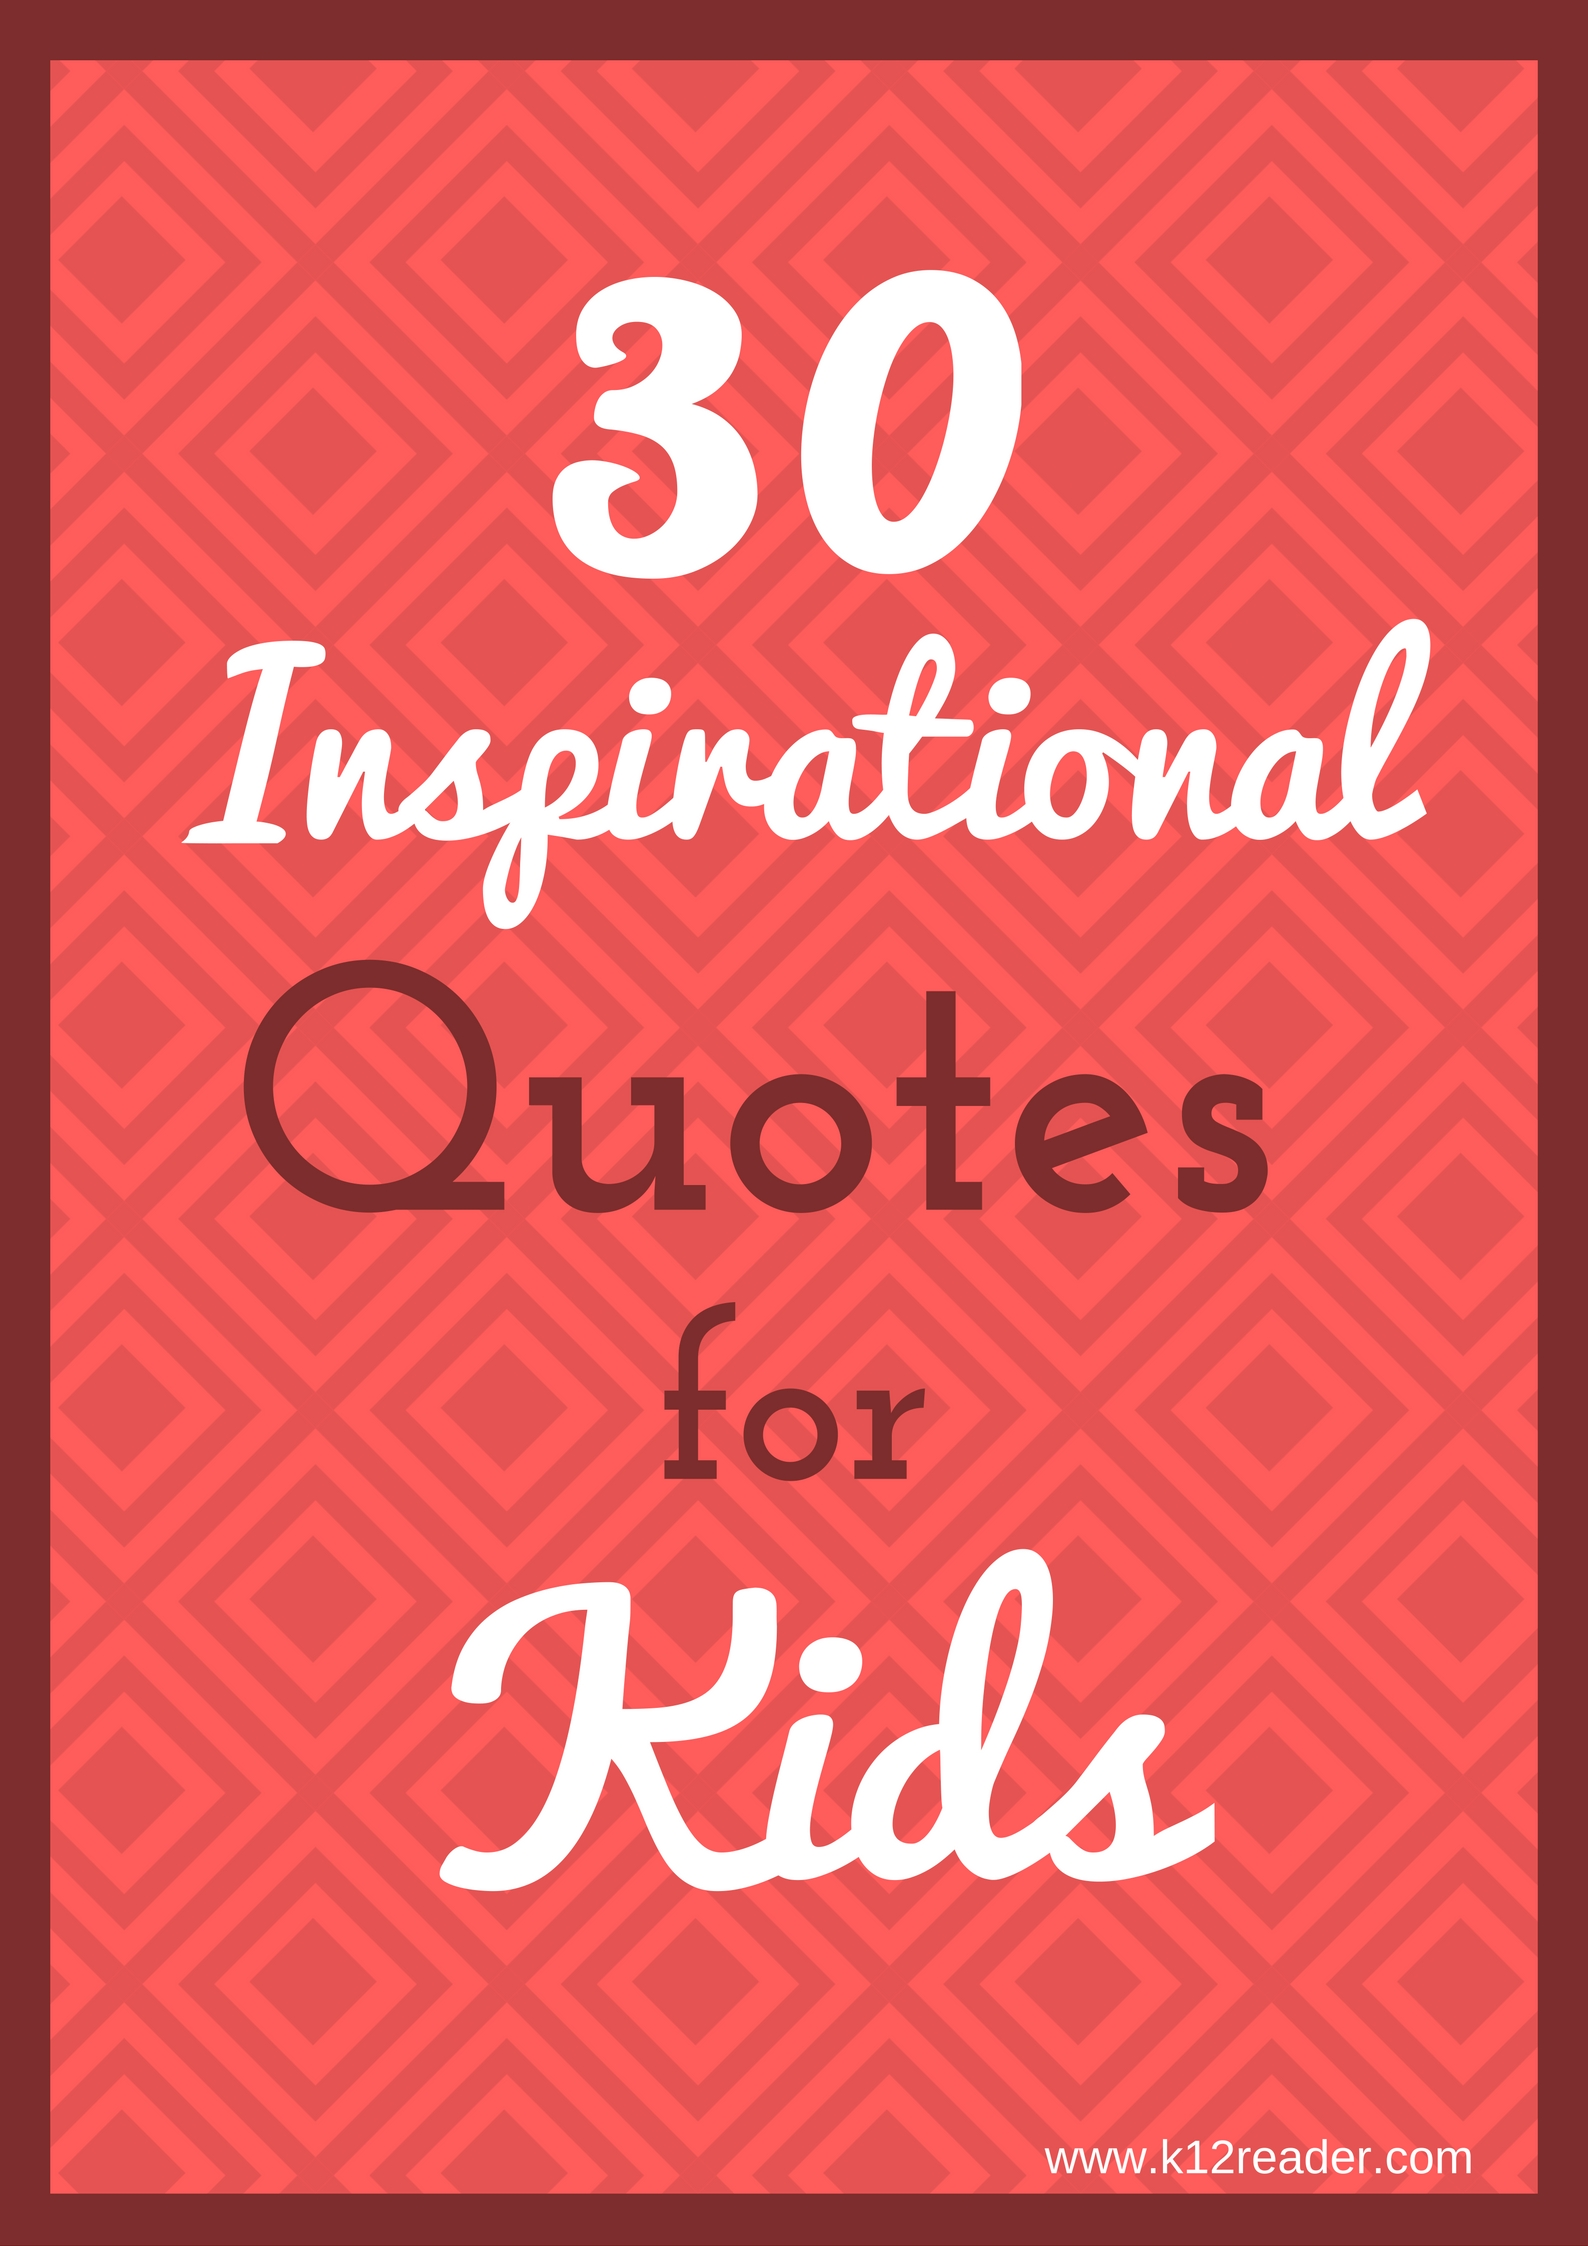 30 Inspirational Quotes for Kids